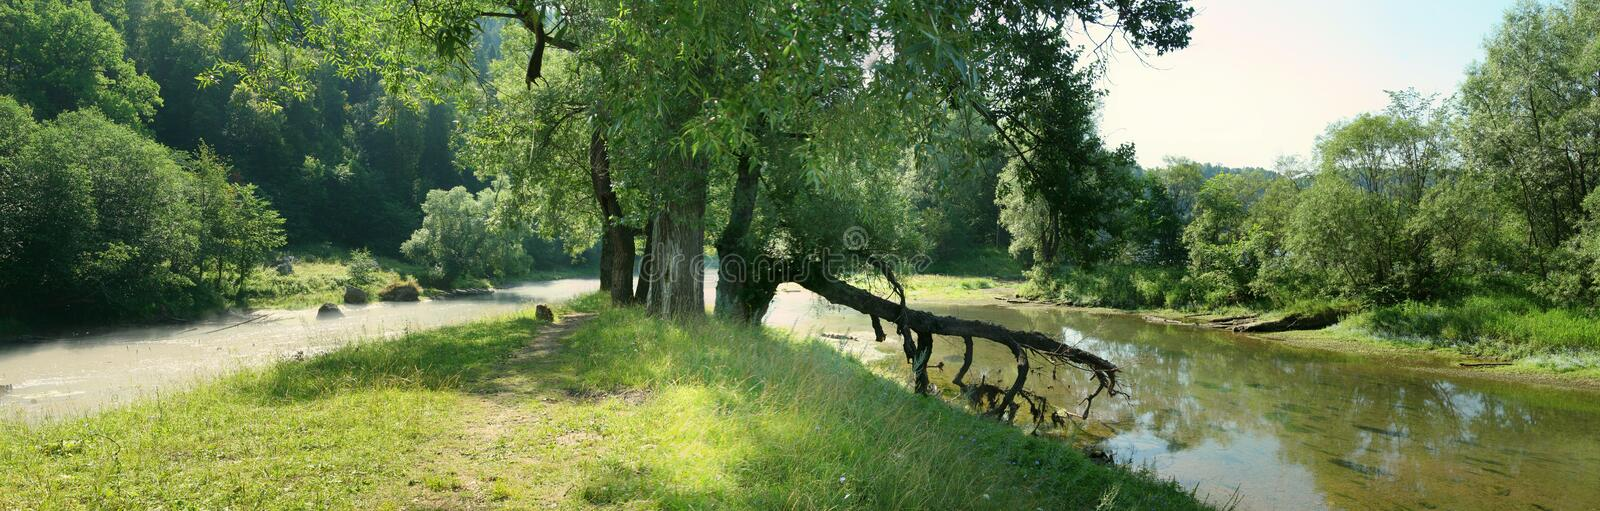 Trees and fallen tree on the bank of shallow river.  stock images